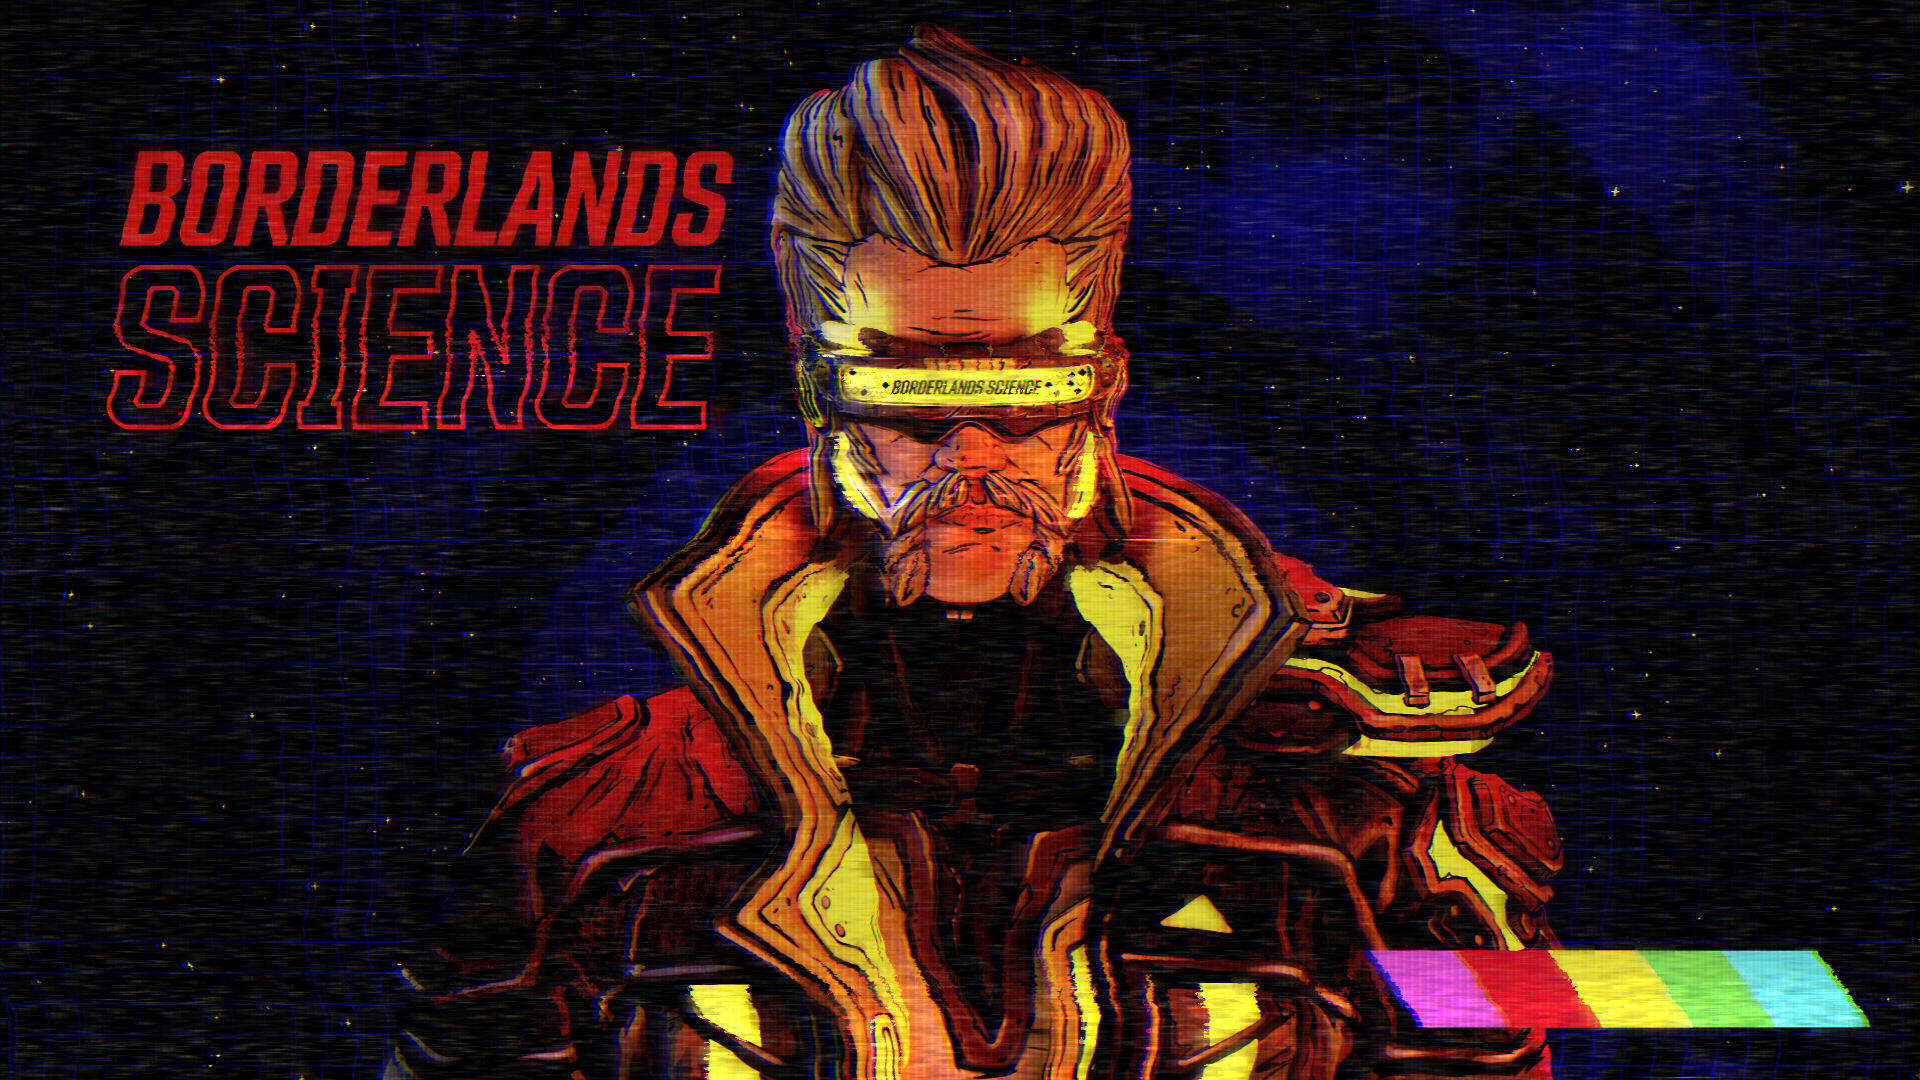 Borderlands Science Enlists Players To Help Advance Scientific